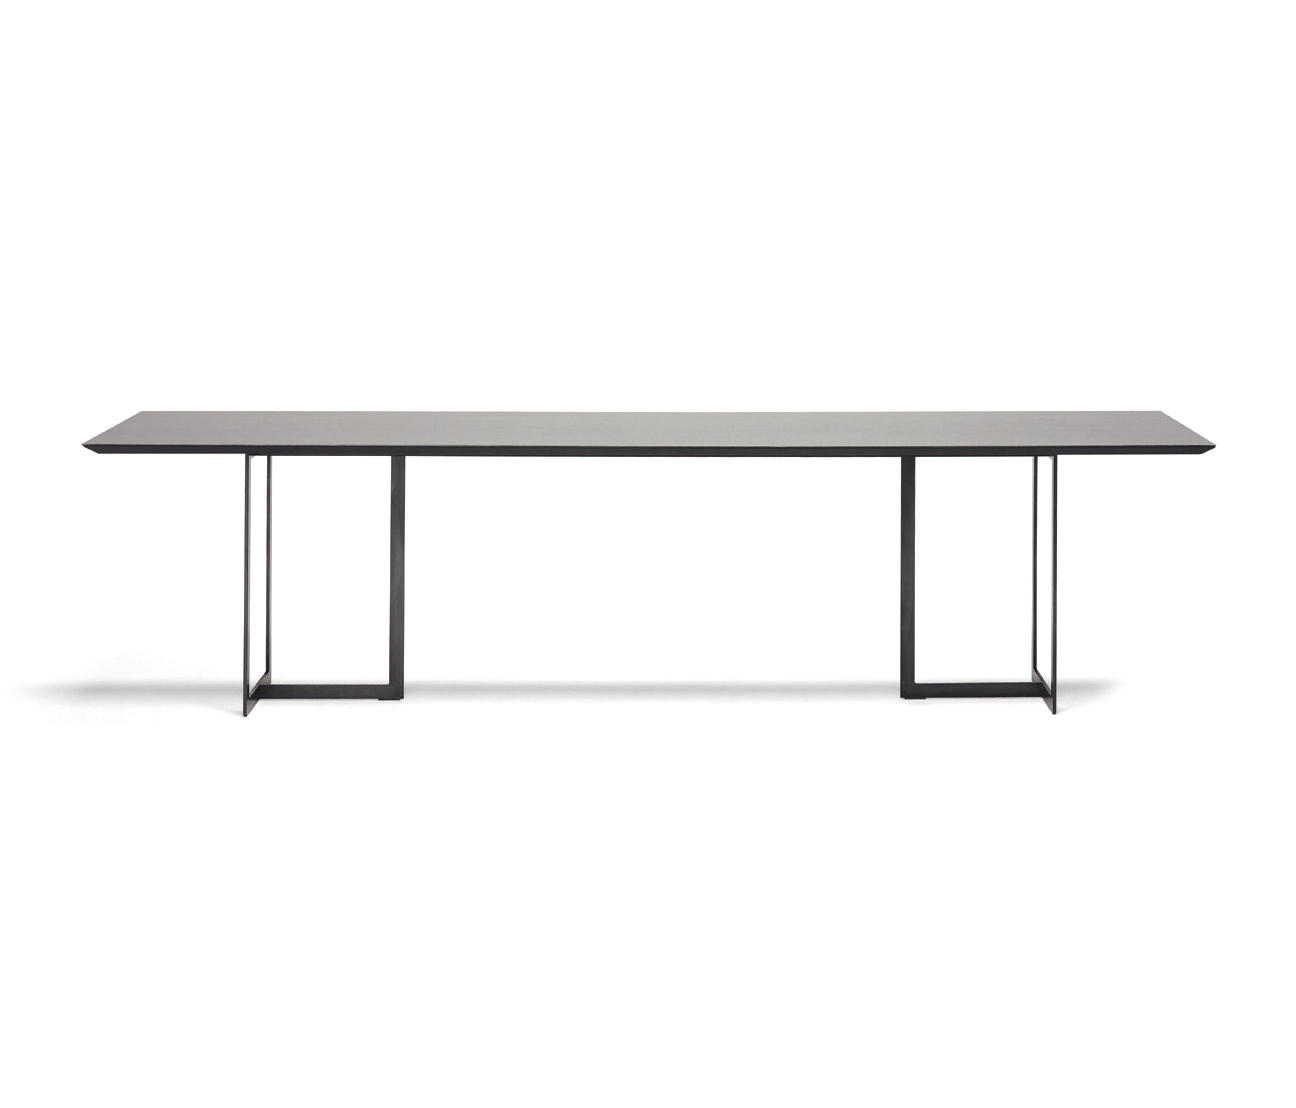 Glastisch Metallgestell Leonardo Rett Dining Tables From Ydf Architonic